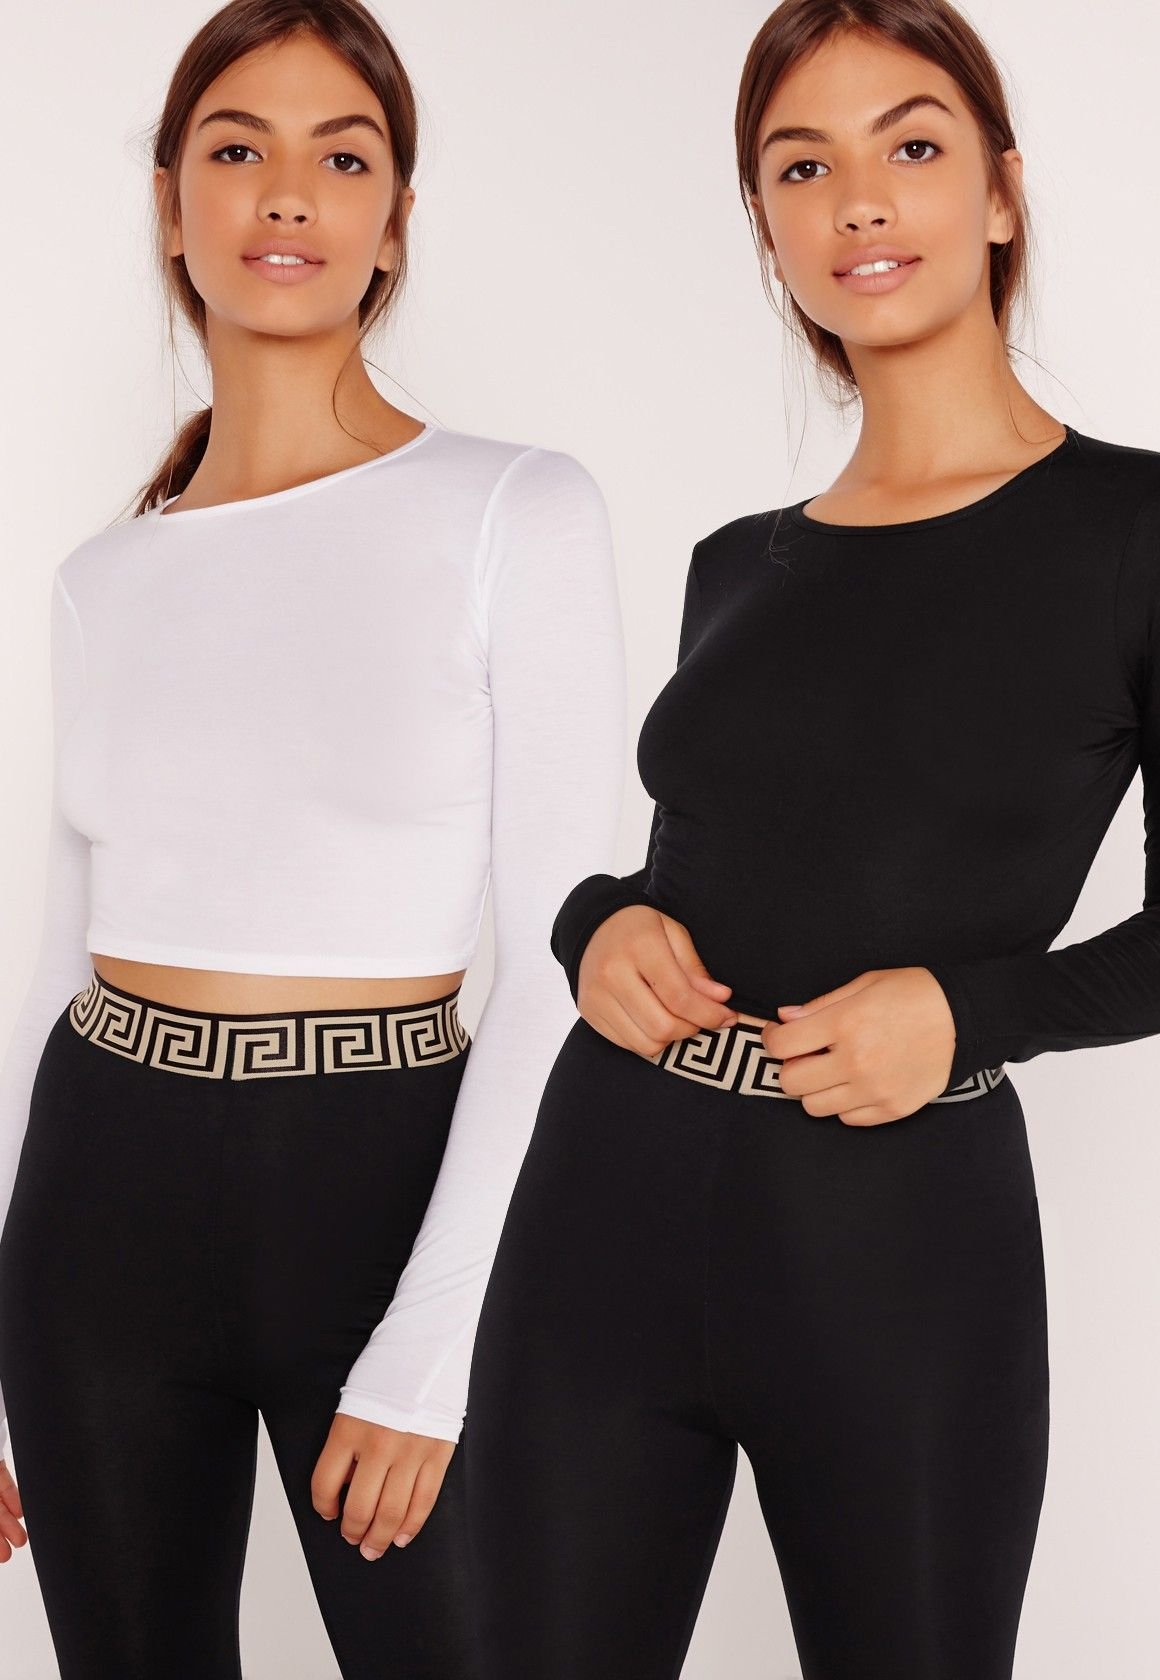 f8022a0c938aee Missguided - Two Pack Long Sleeve Crop Top Black and White